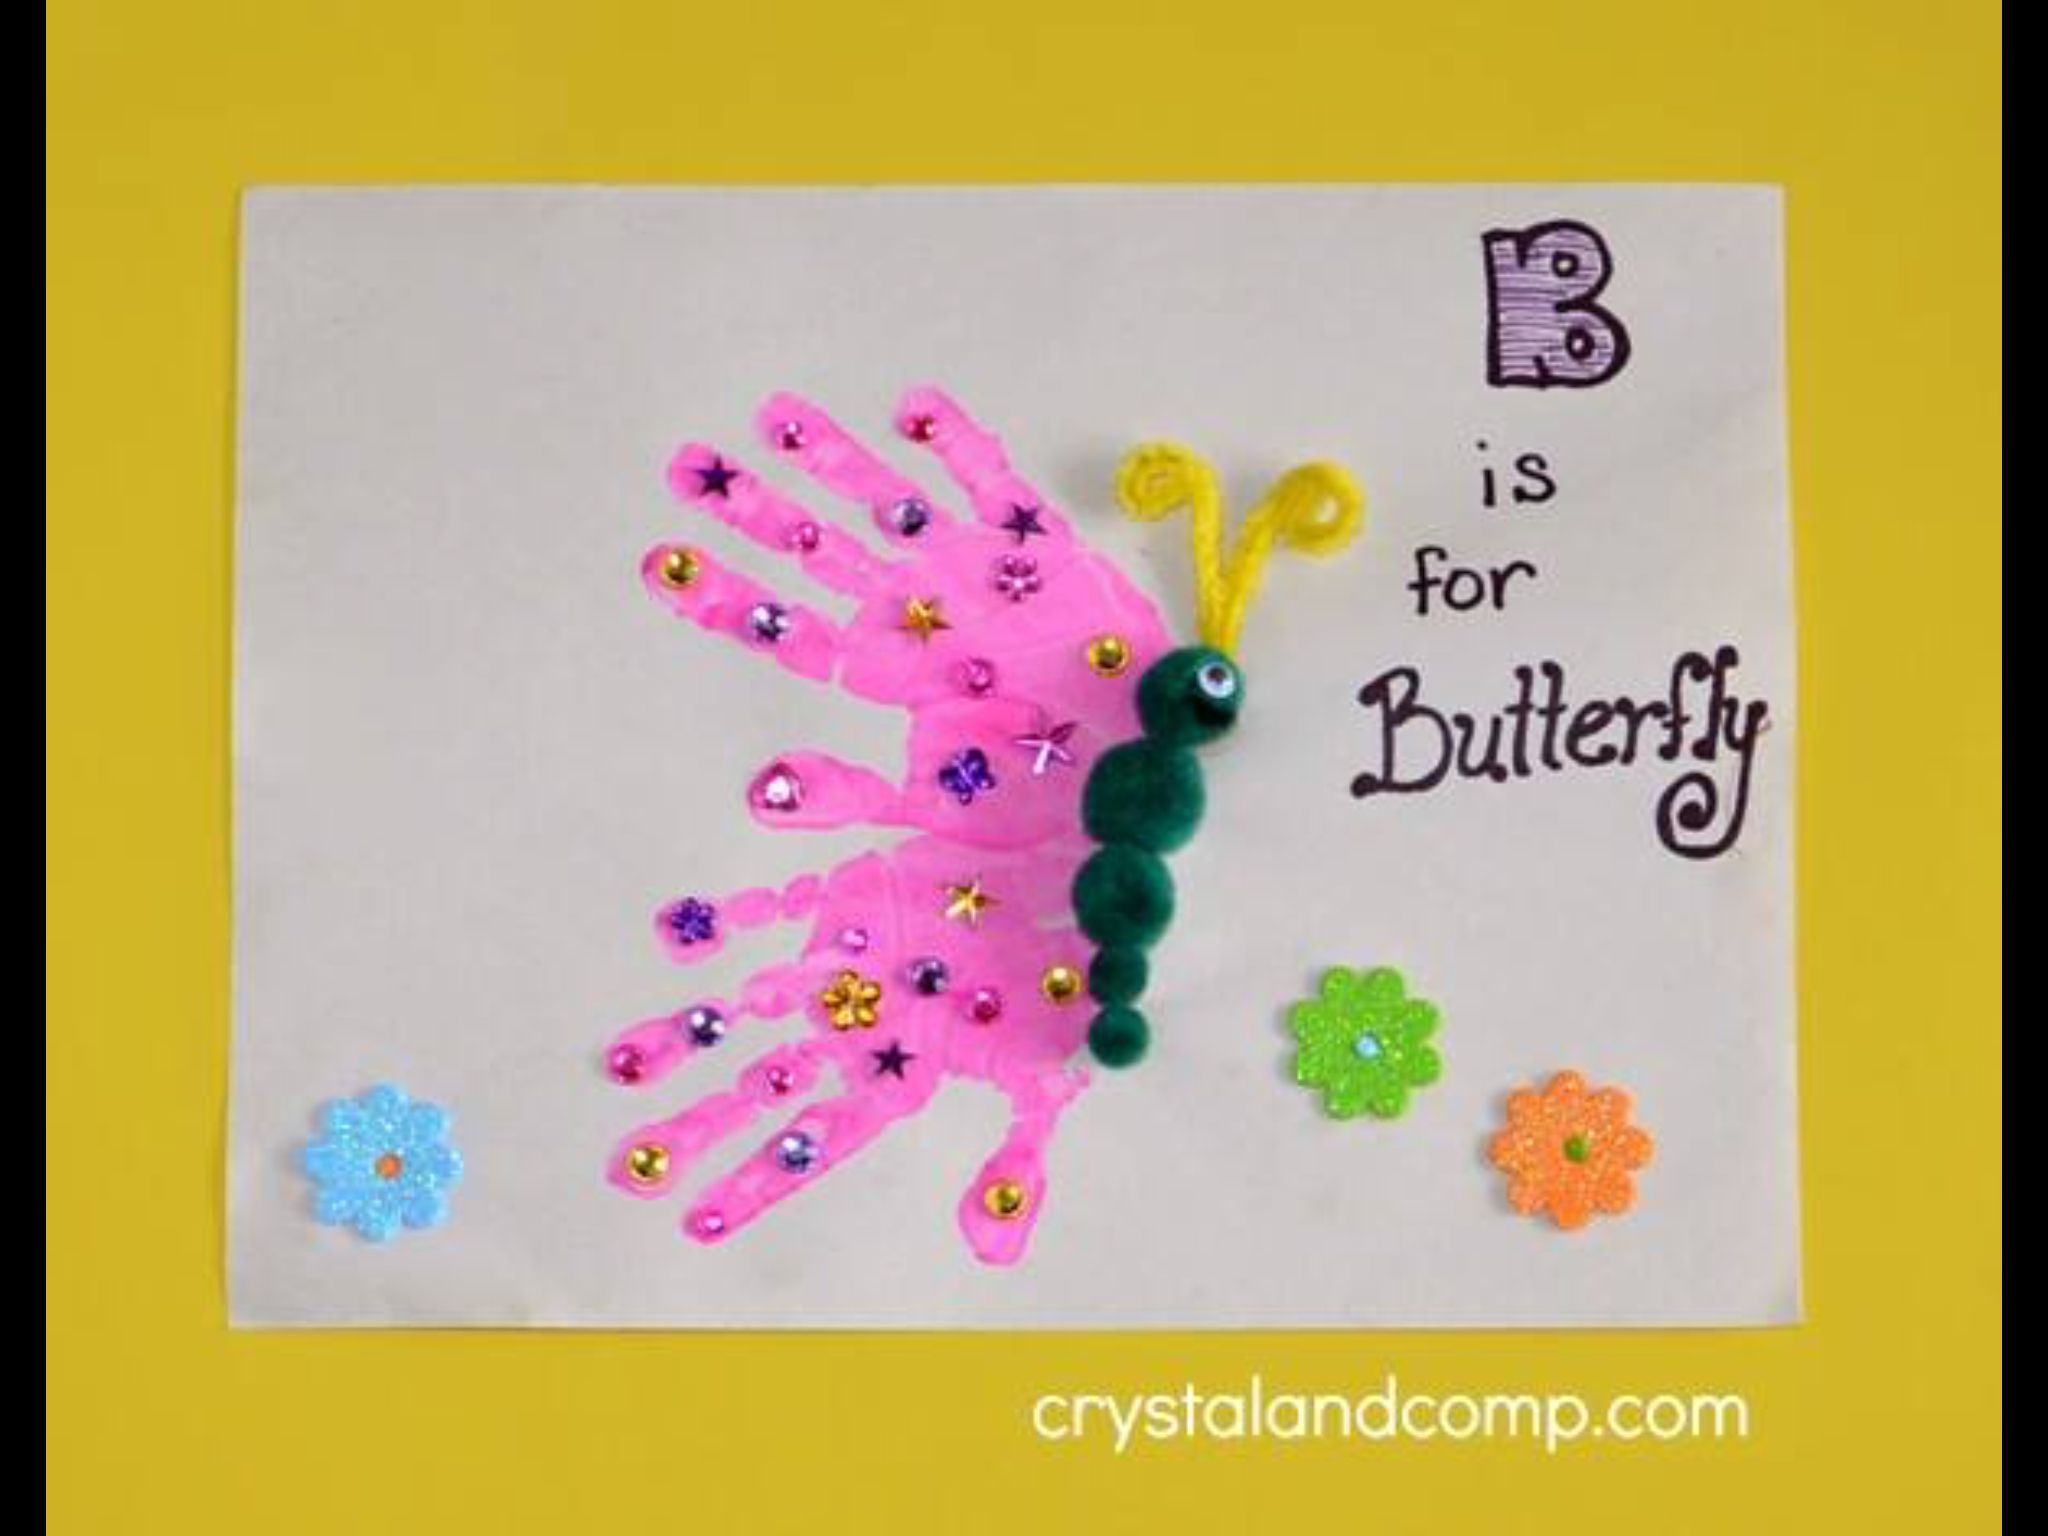 B is for butterfly discovery pinterest butterfly and for Butterfly hands craft